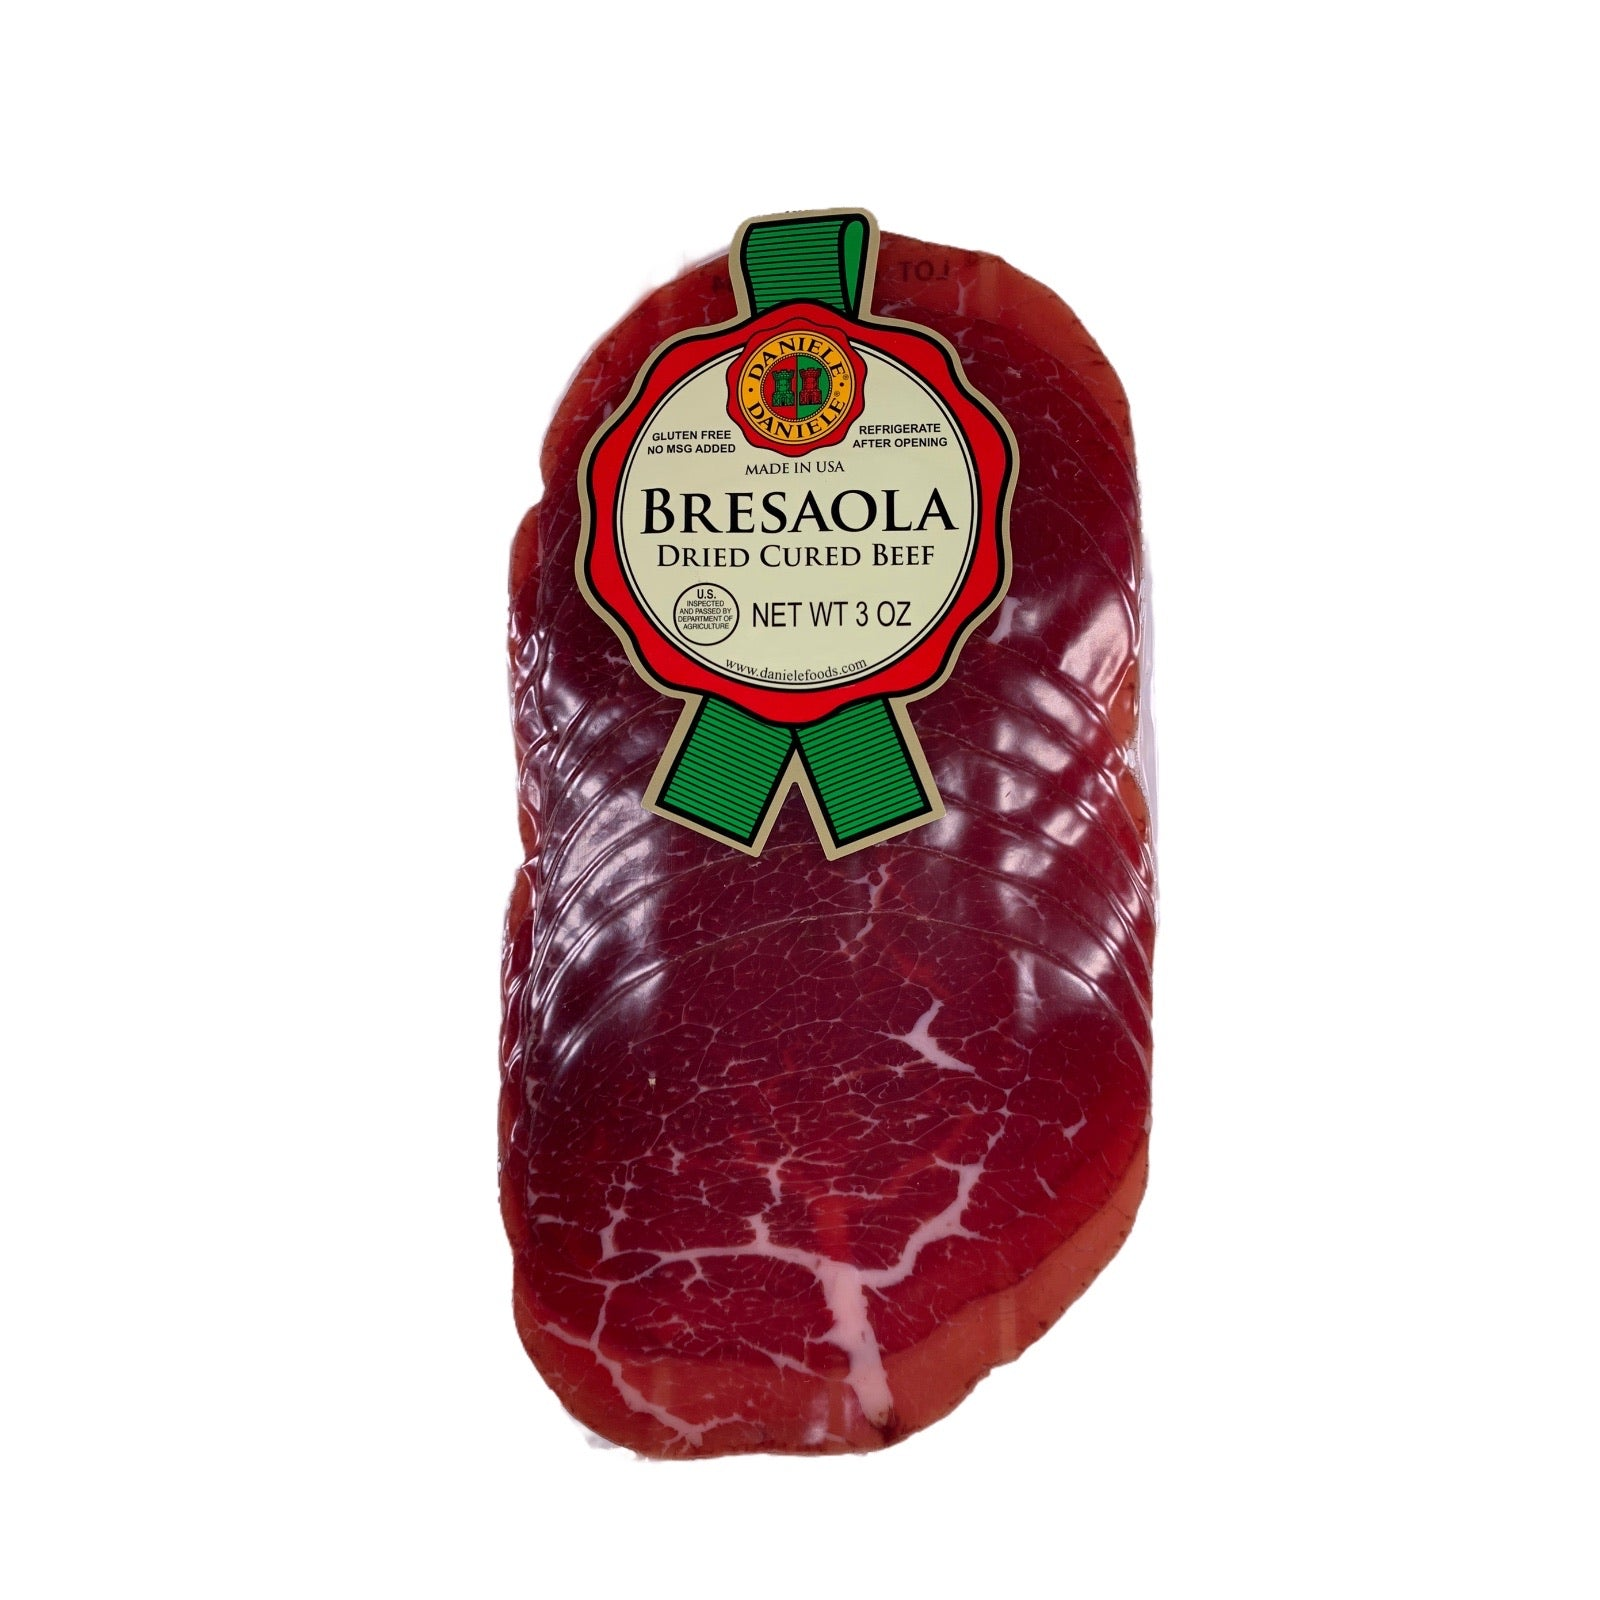 Daniele Bresaola 3oz, dry cured beef